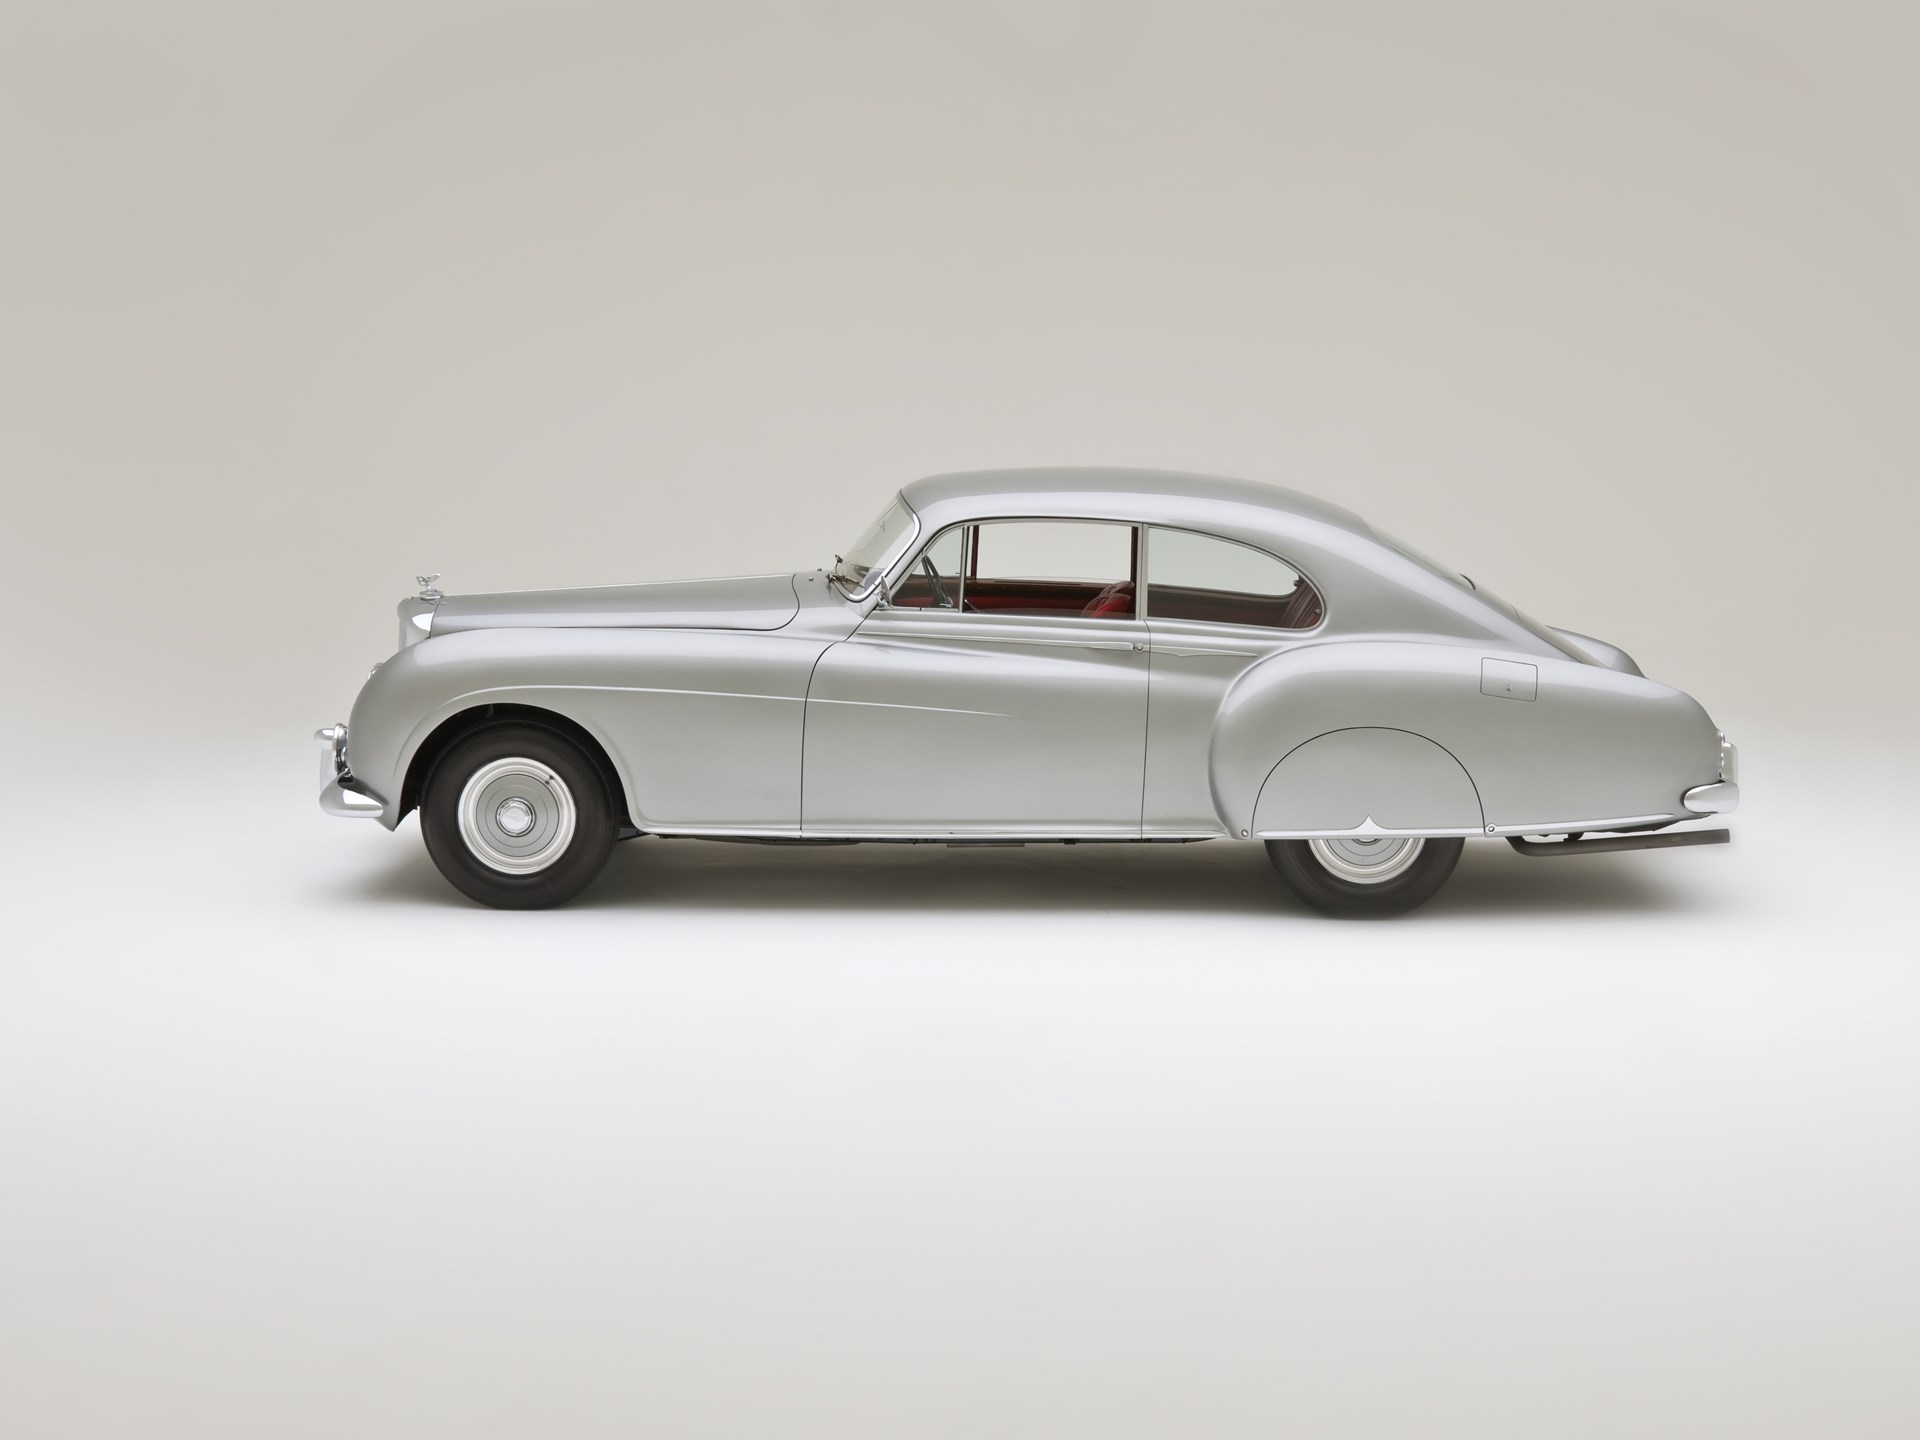 1953 Bentley R-Type Continental Fastback Sports Saloon by H.J. Mulliner